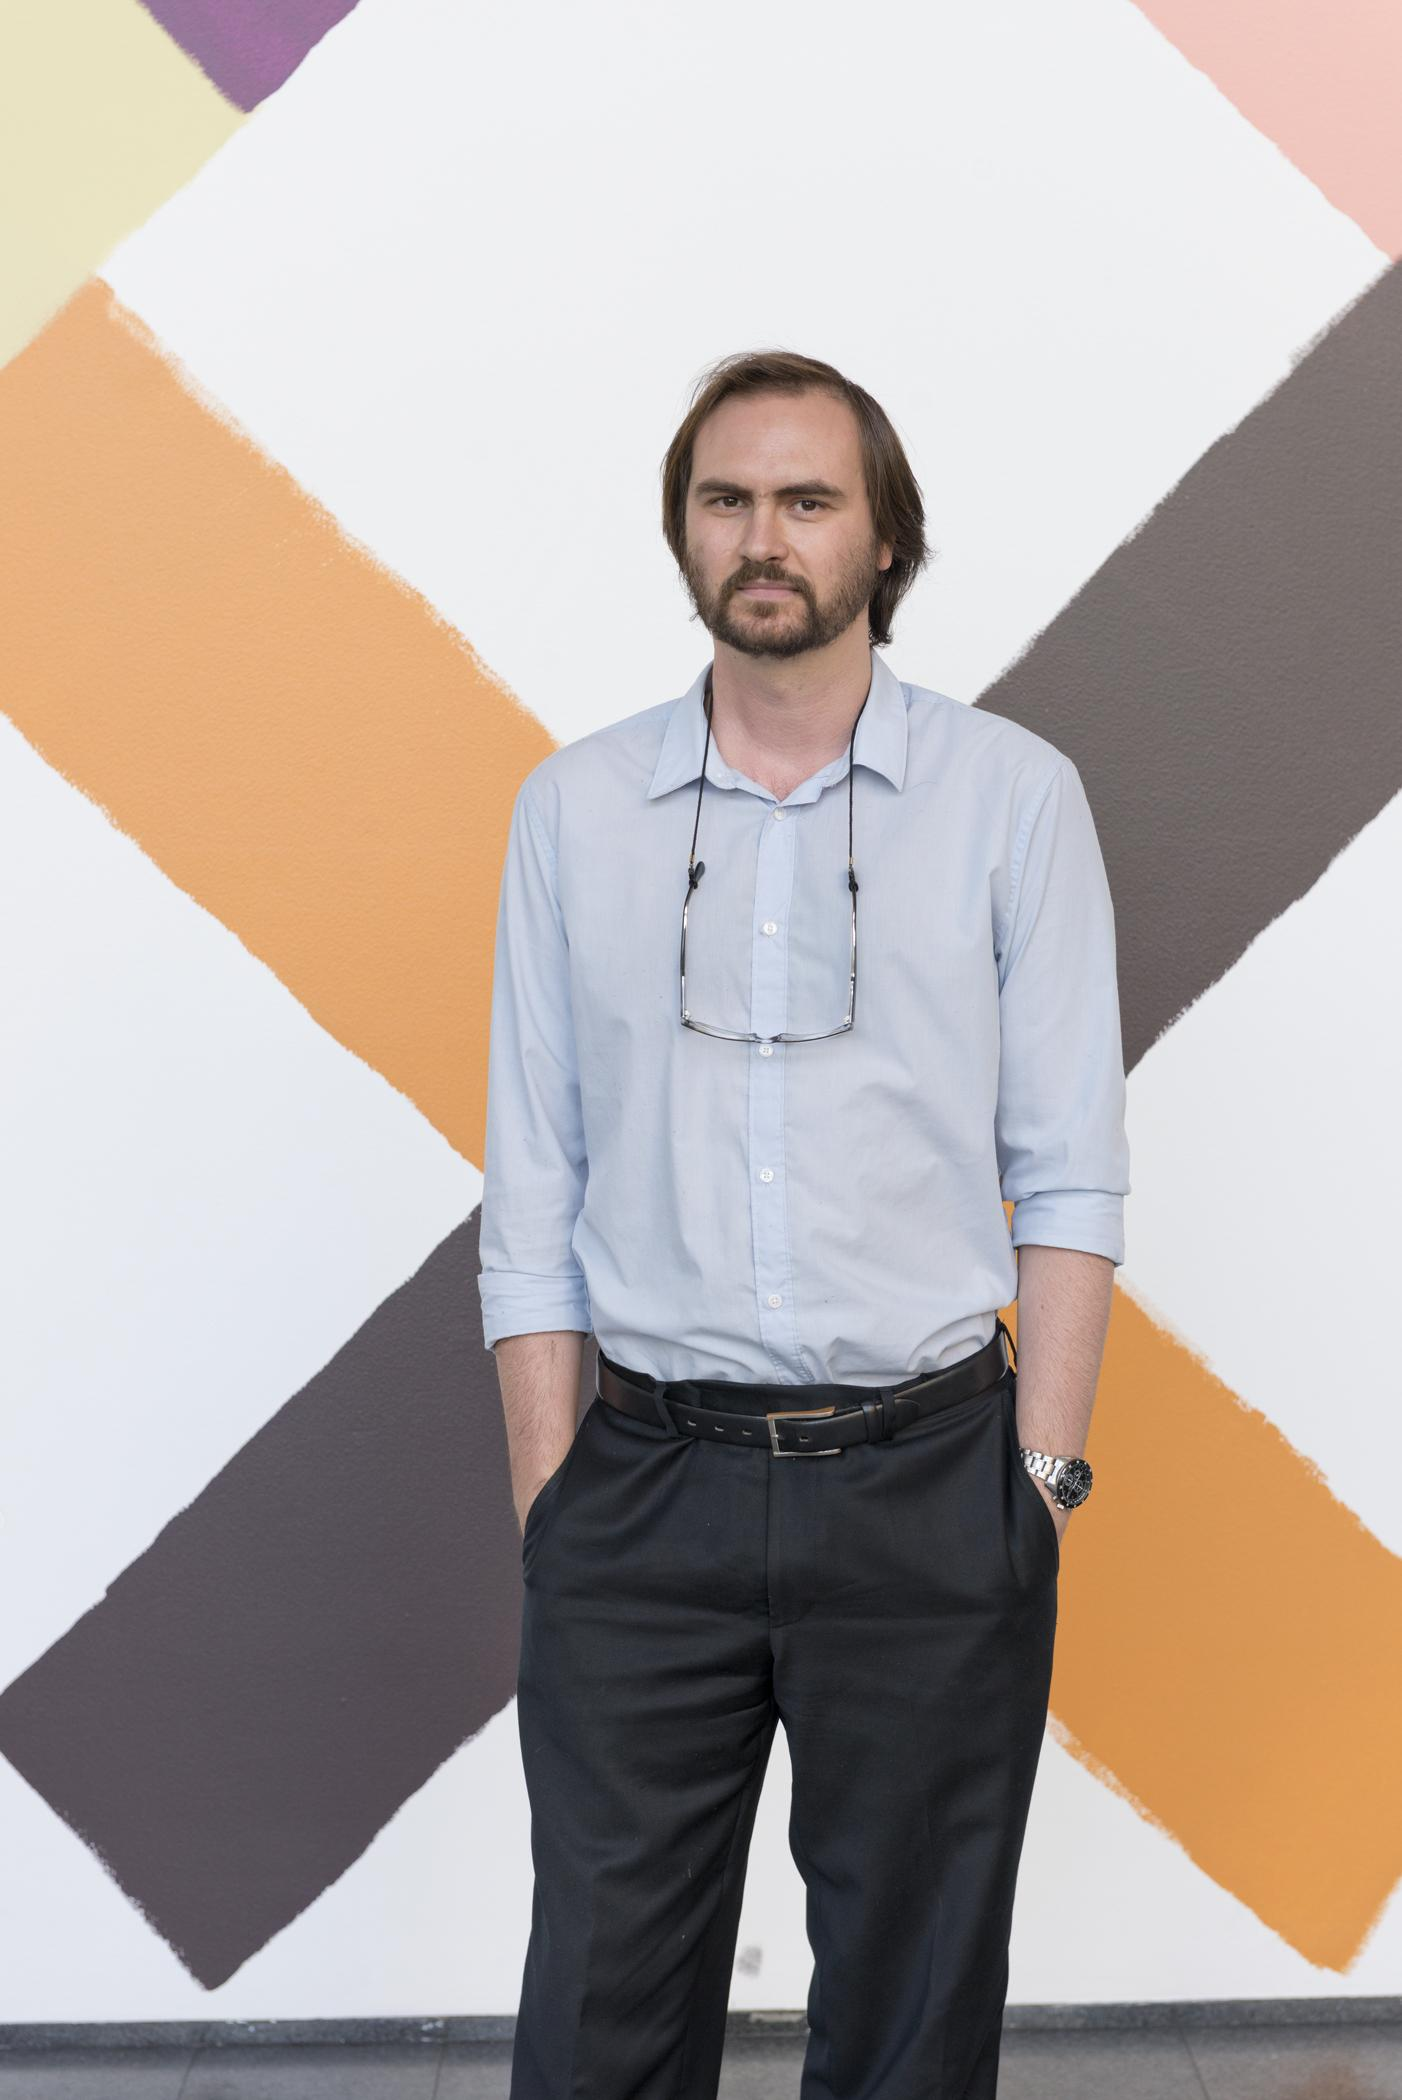 Former MCA curator Dieter Roelstraete stands in front of a wall painted with multicolor exes.